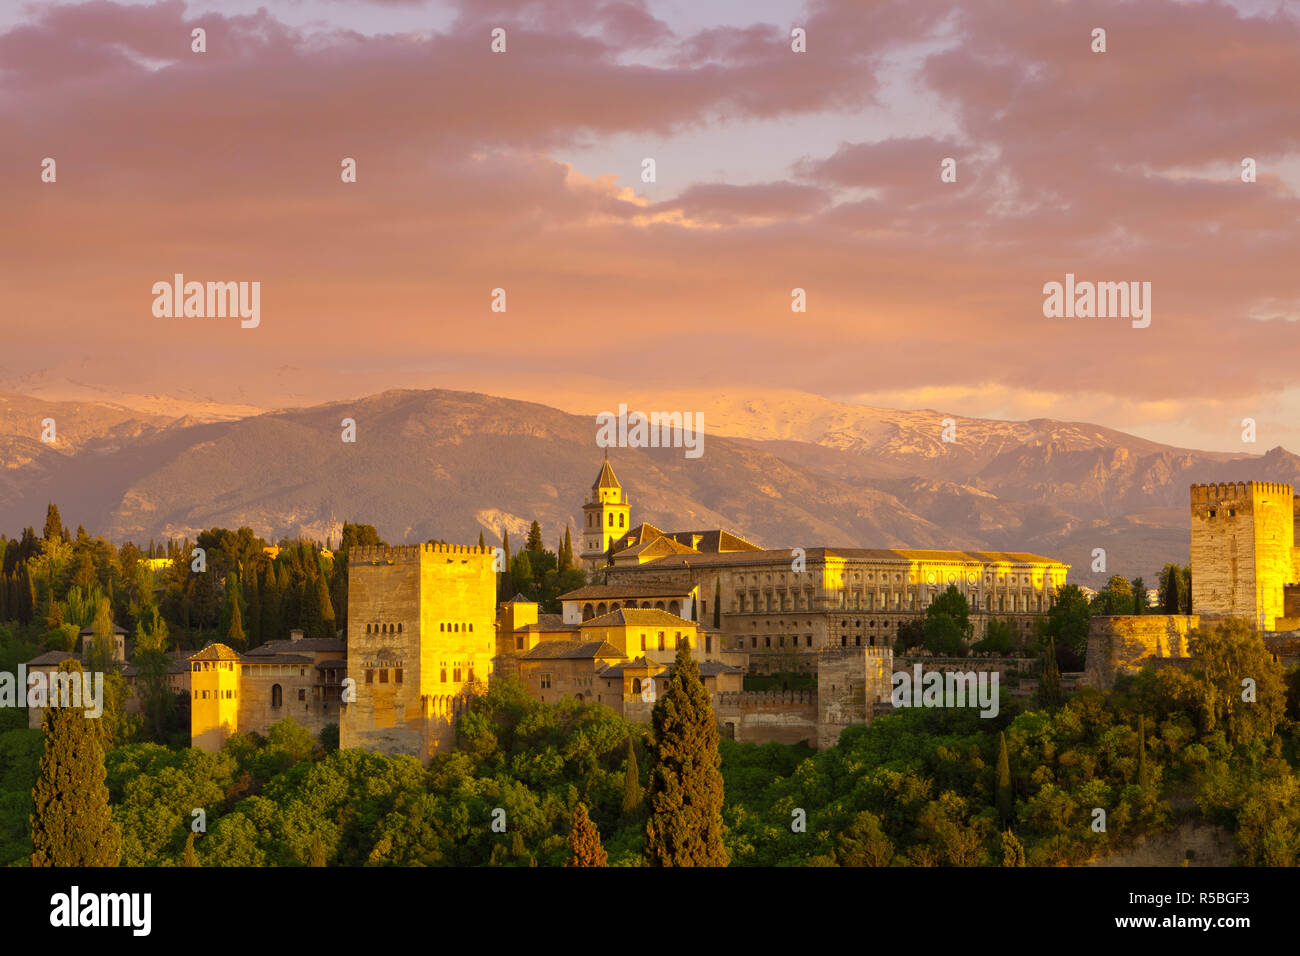 The Alhambra Palace at sunset, Granada, Granada Province, Andalucia, Spain - Stock Image